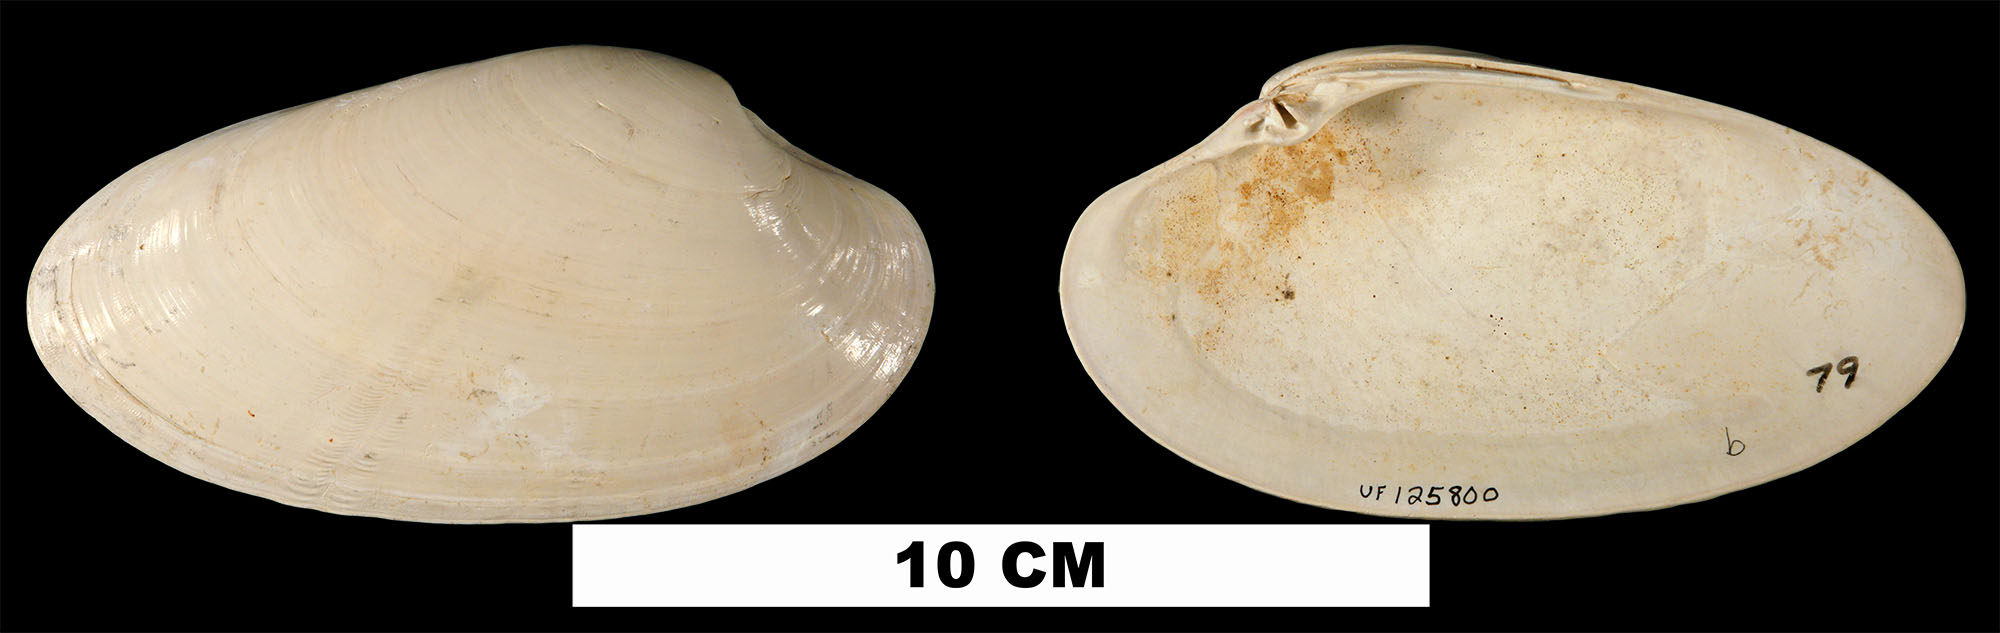 <i>Macrocallista nimbosa</i> from the Early Pleistocene Caloosahatchee Fm. or Middle Pleistocene Bermont Fm. (stratigraphic position uncertain) of Glades County, Florida (UF 125800).